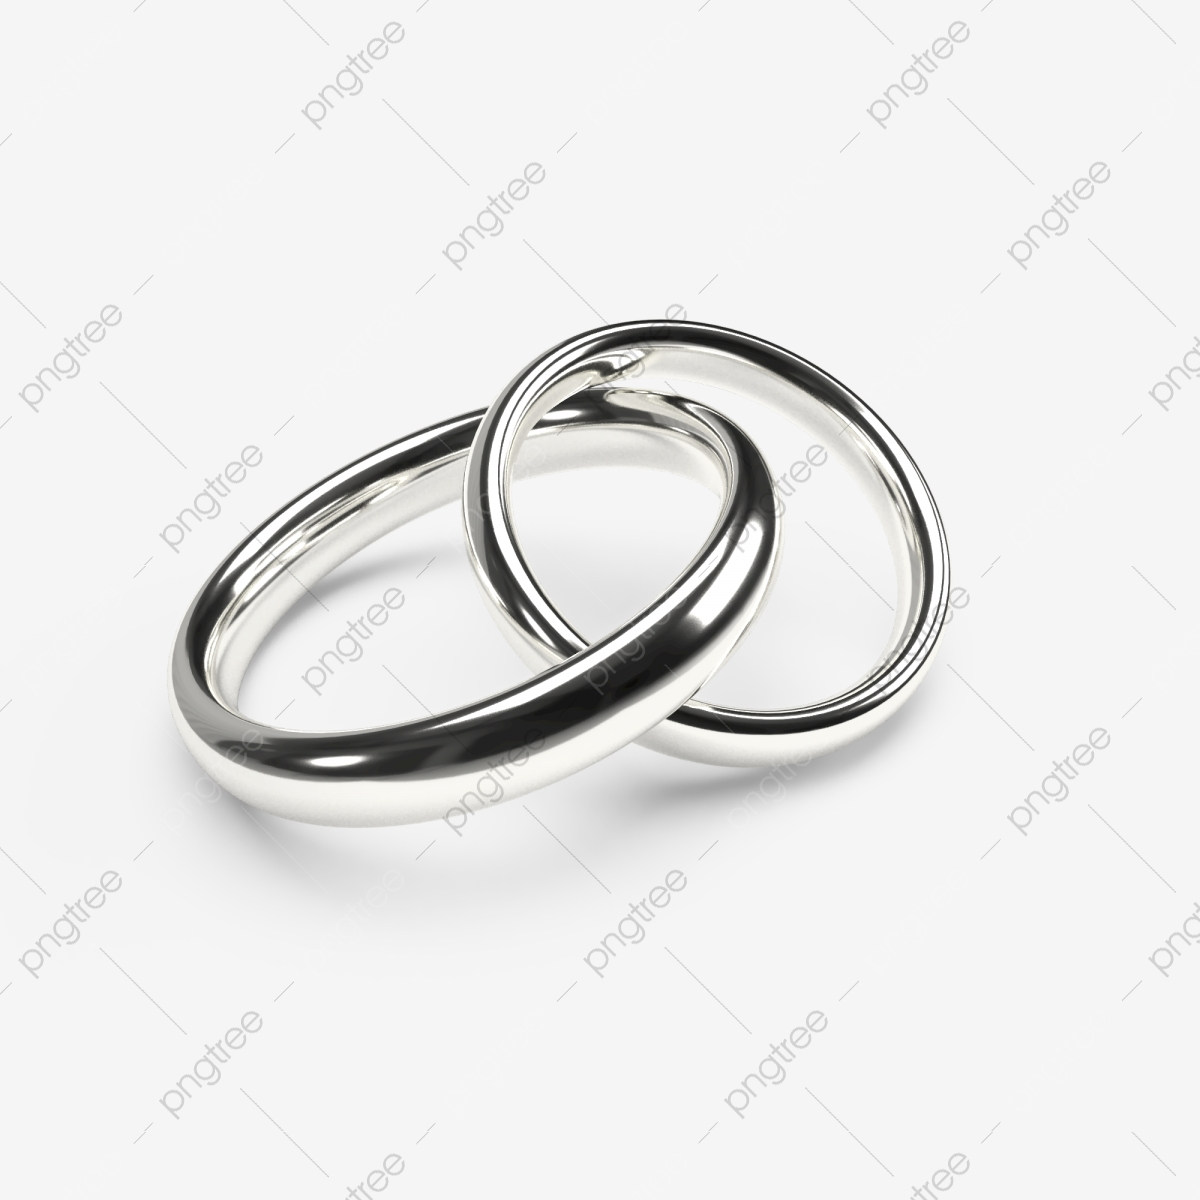 Ring Clipart Png Images Vector And Psd Files Free Download On Pngtree